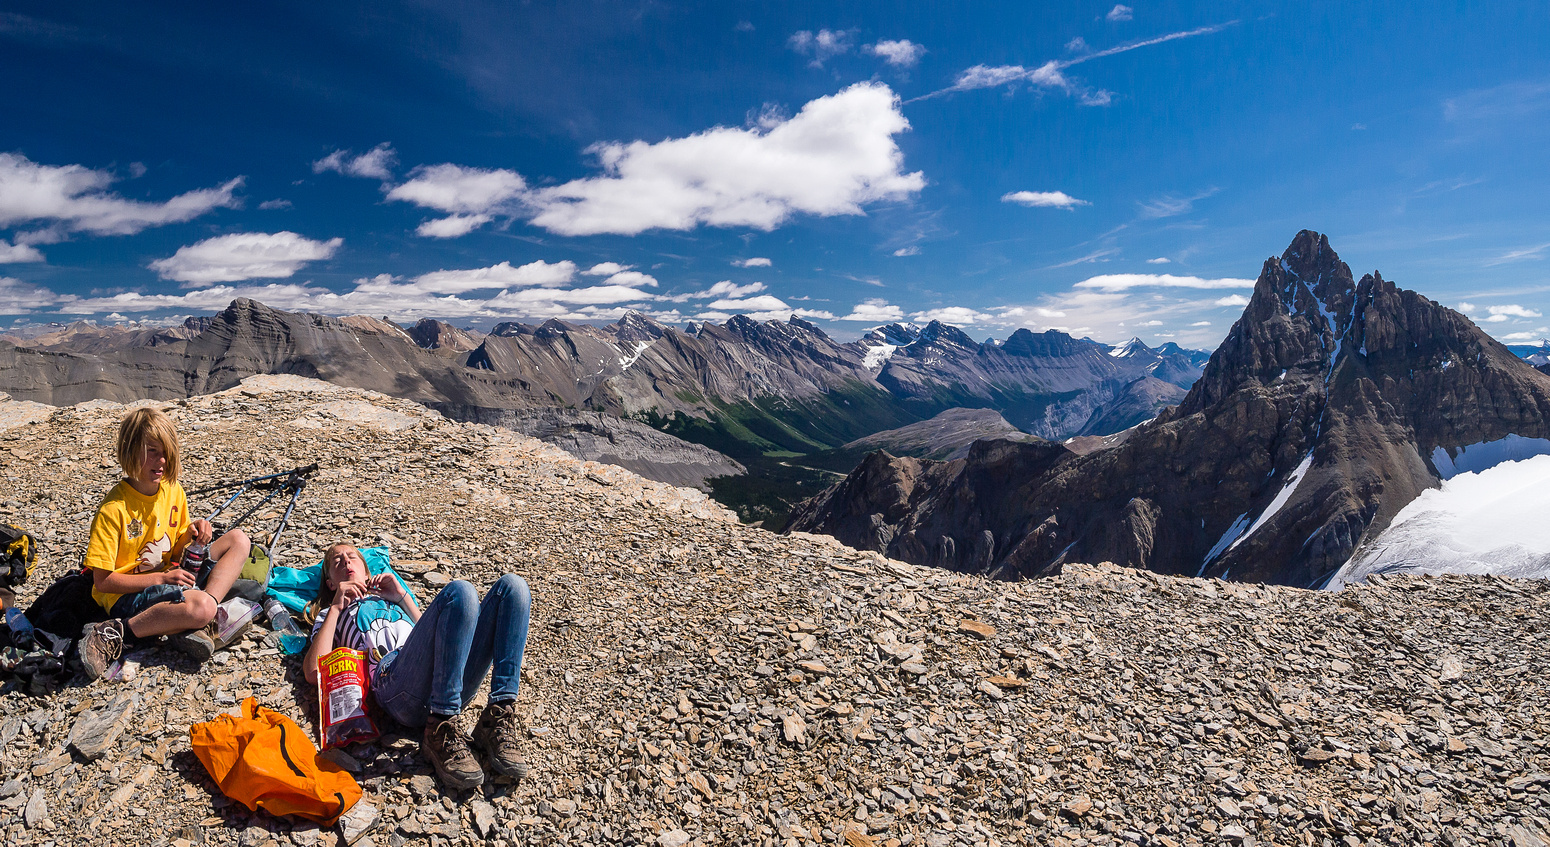 A lazy summer day on the summit of Boundary Peak.